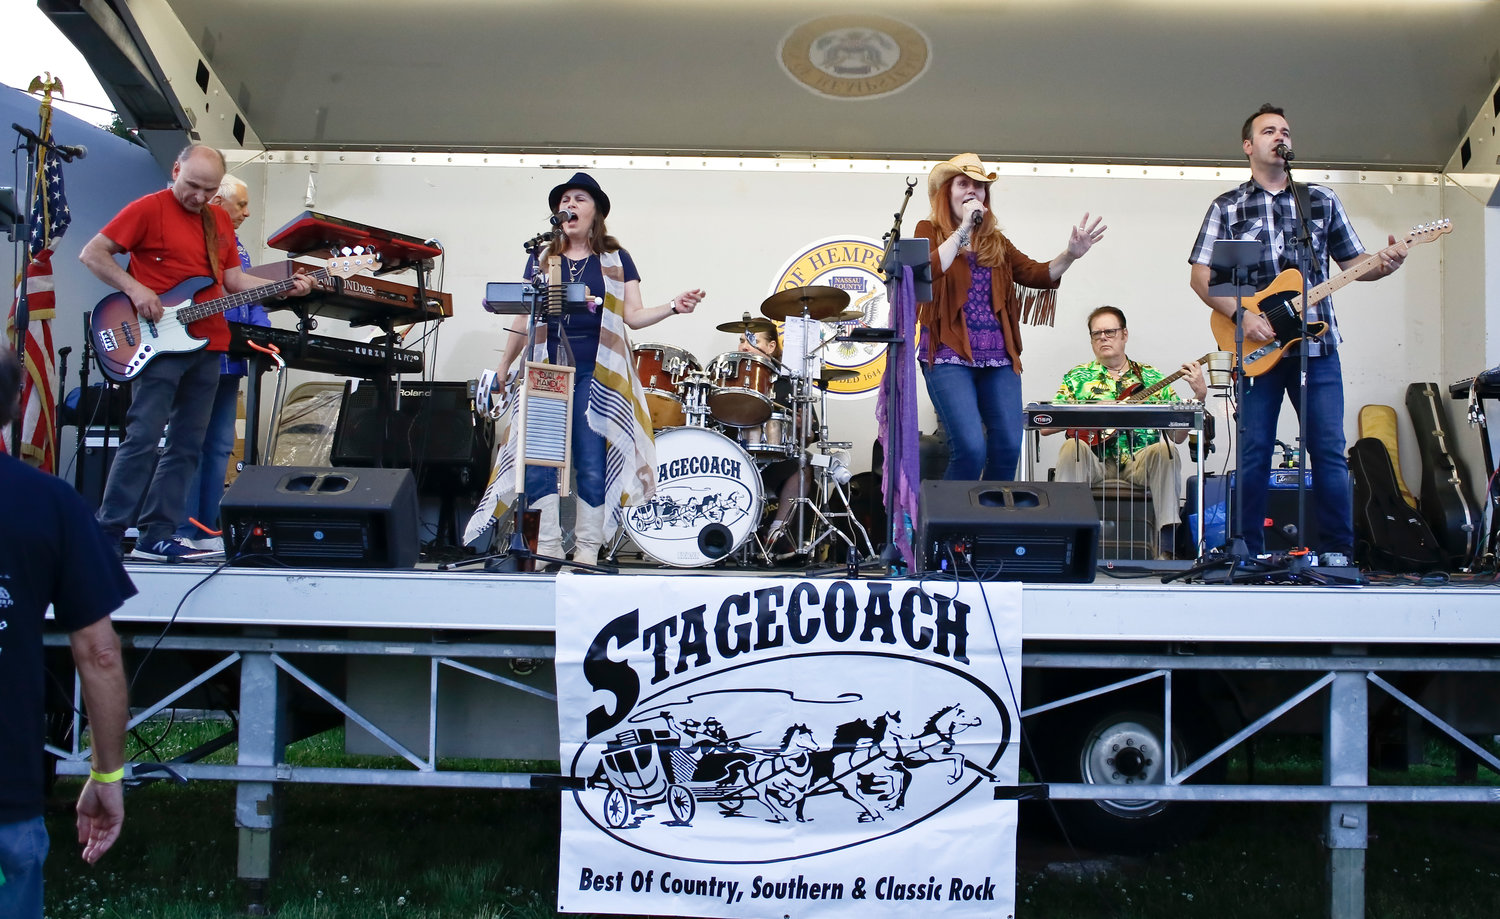 Musical entertainment provided by Stagecoach got the crowd up and dancing.